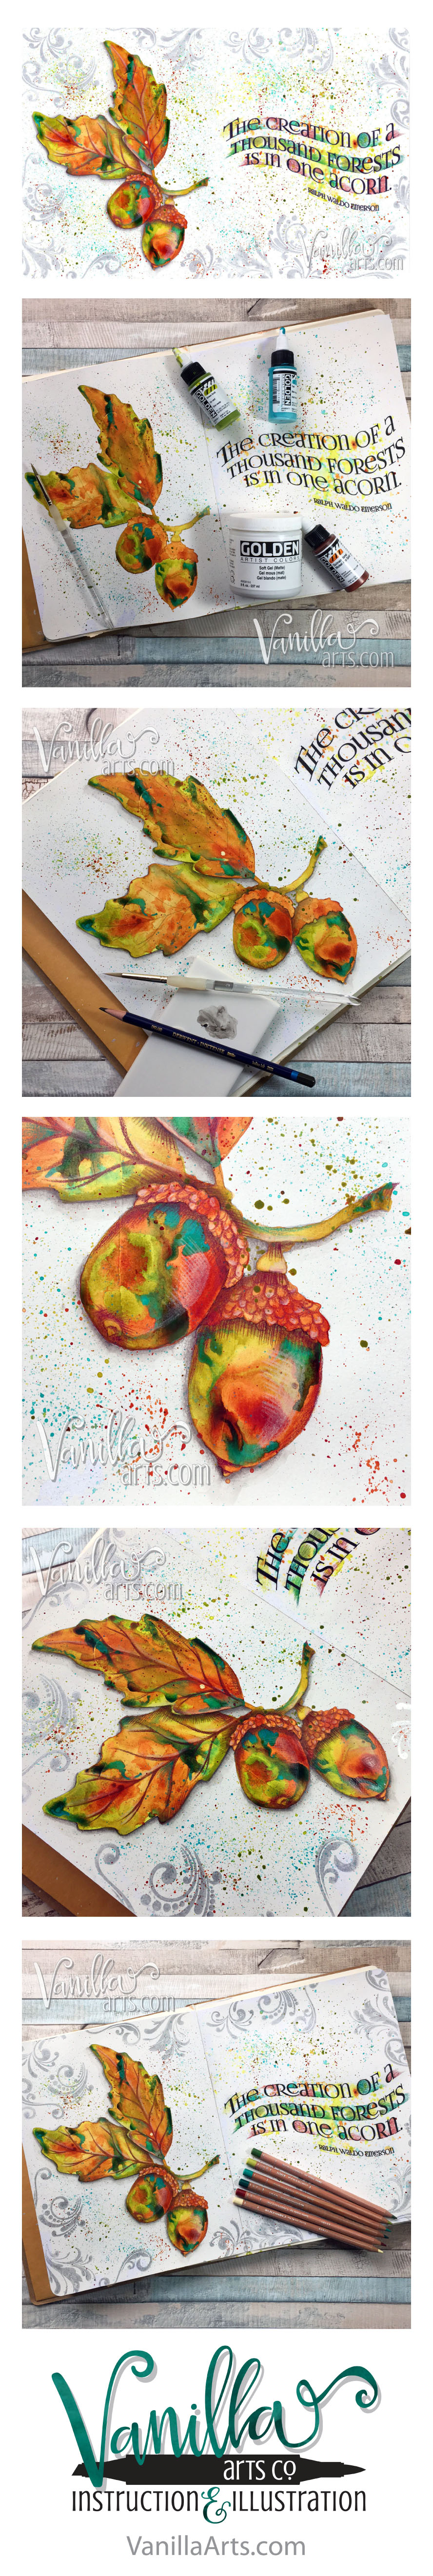 """One Acorn""- Expressive, kit-based art journaling lessons for paper crafters and Copic colorers 